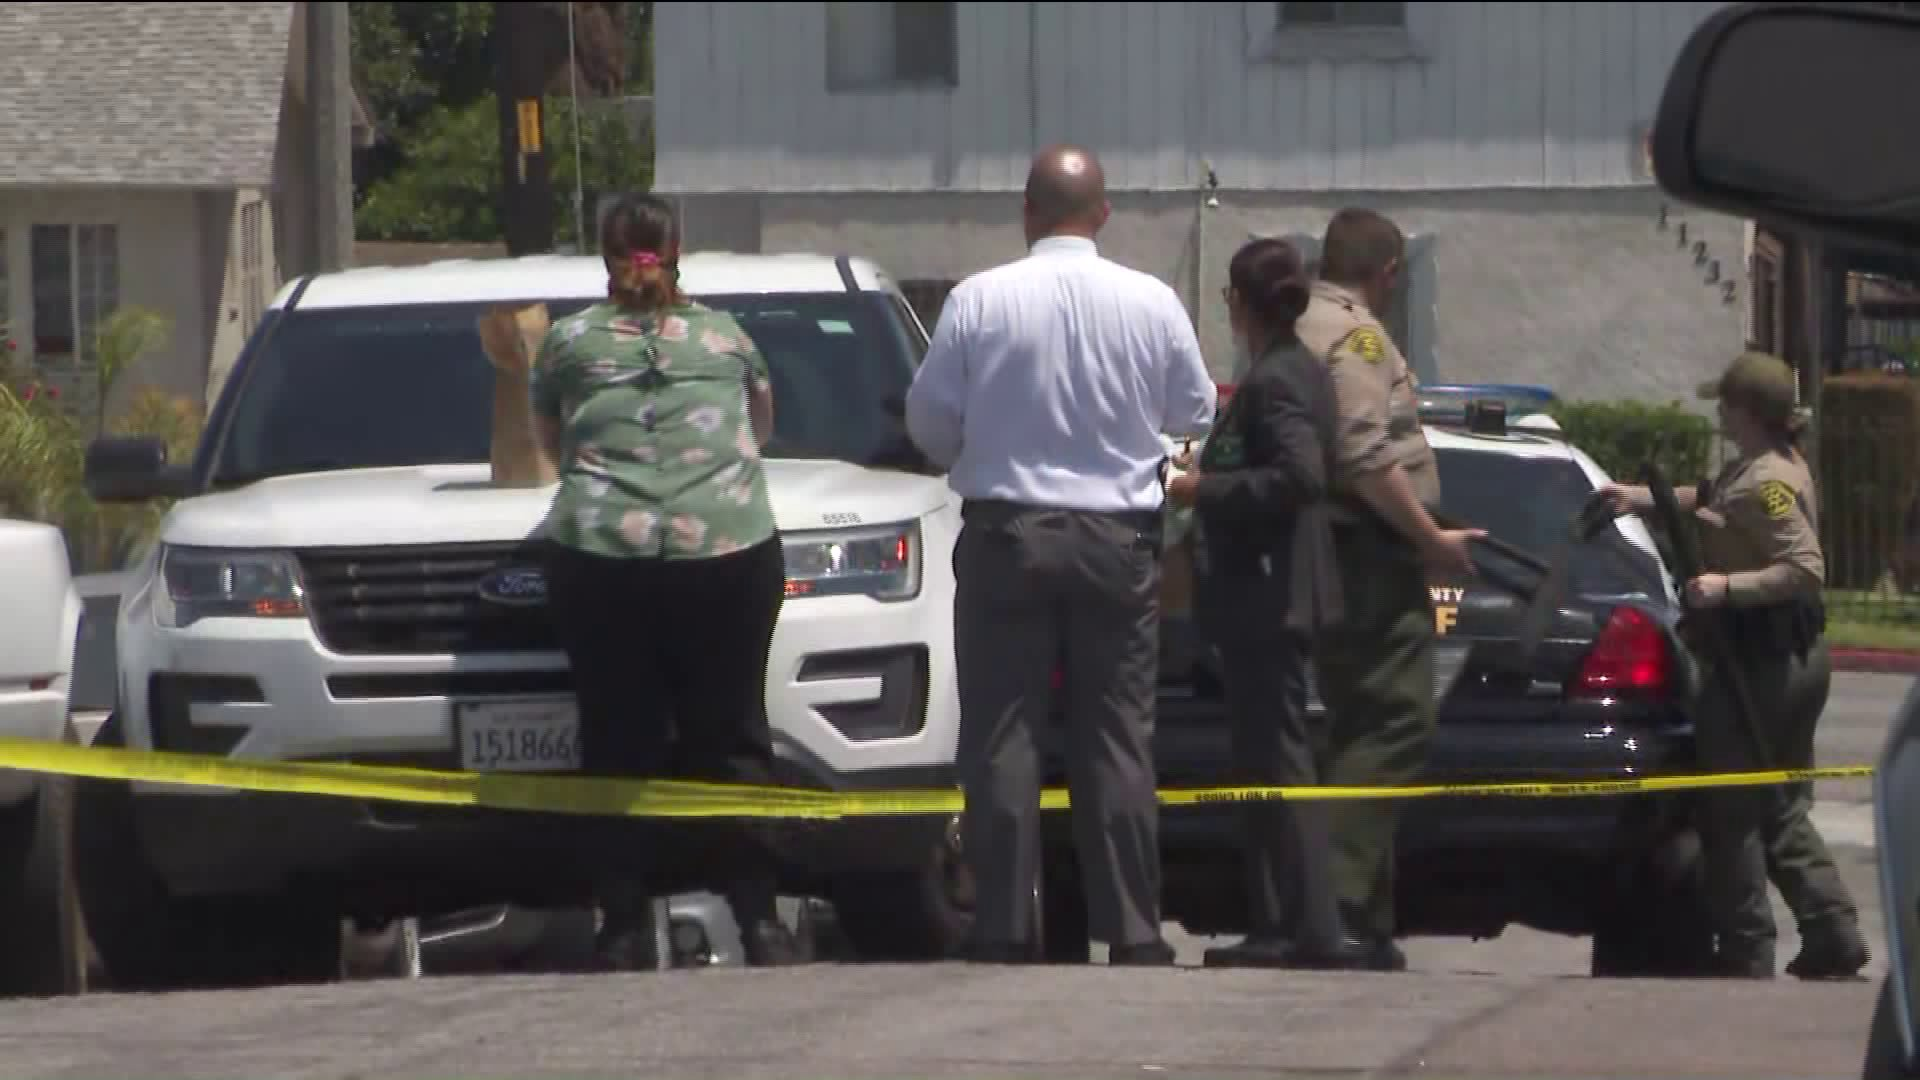 Deputies investigate at the scene of a fatal shooting in the Westmont area of South L.A. on Aug. 4, 2020. (KTLA)